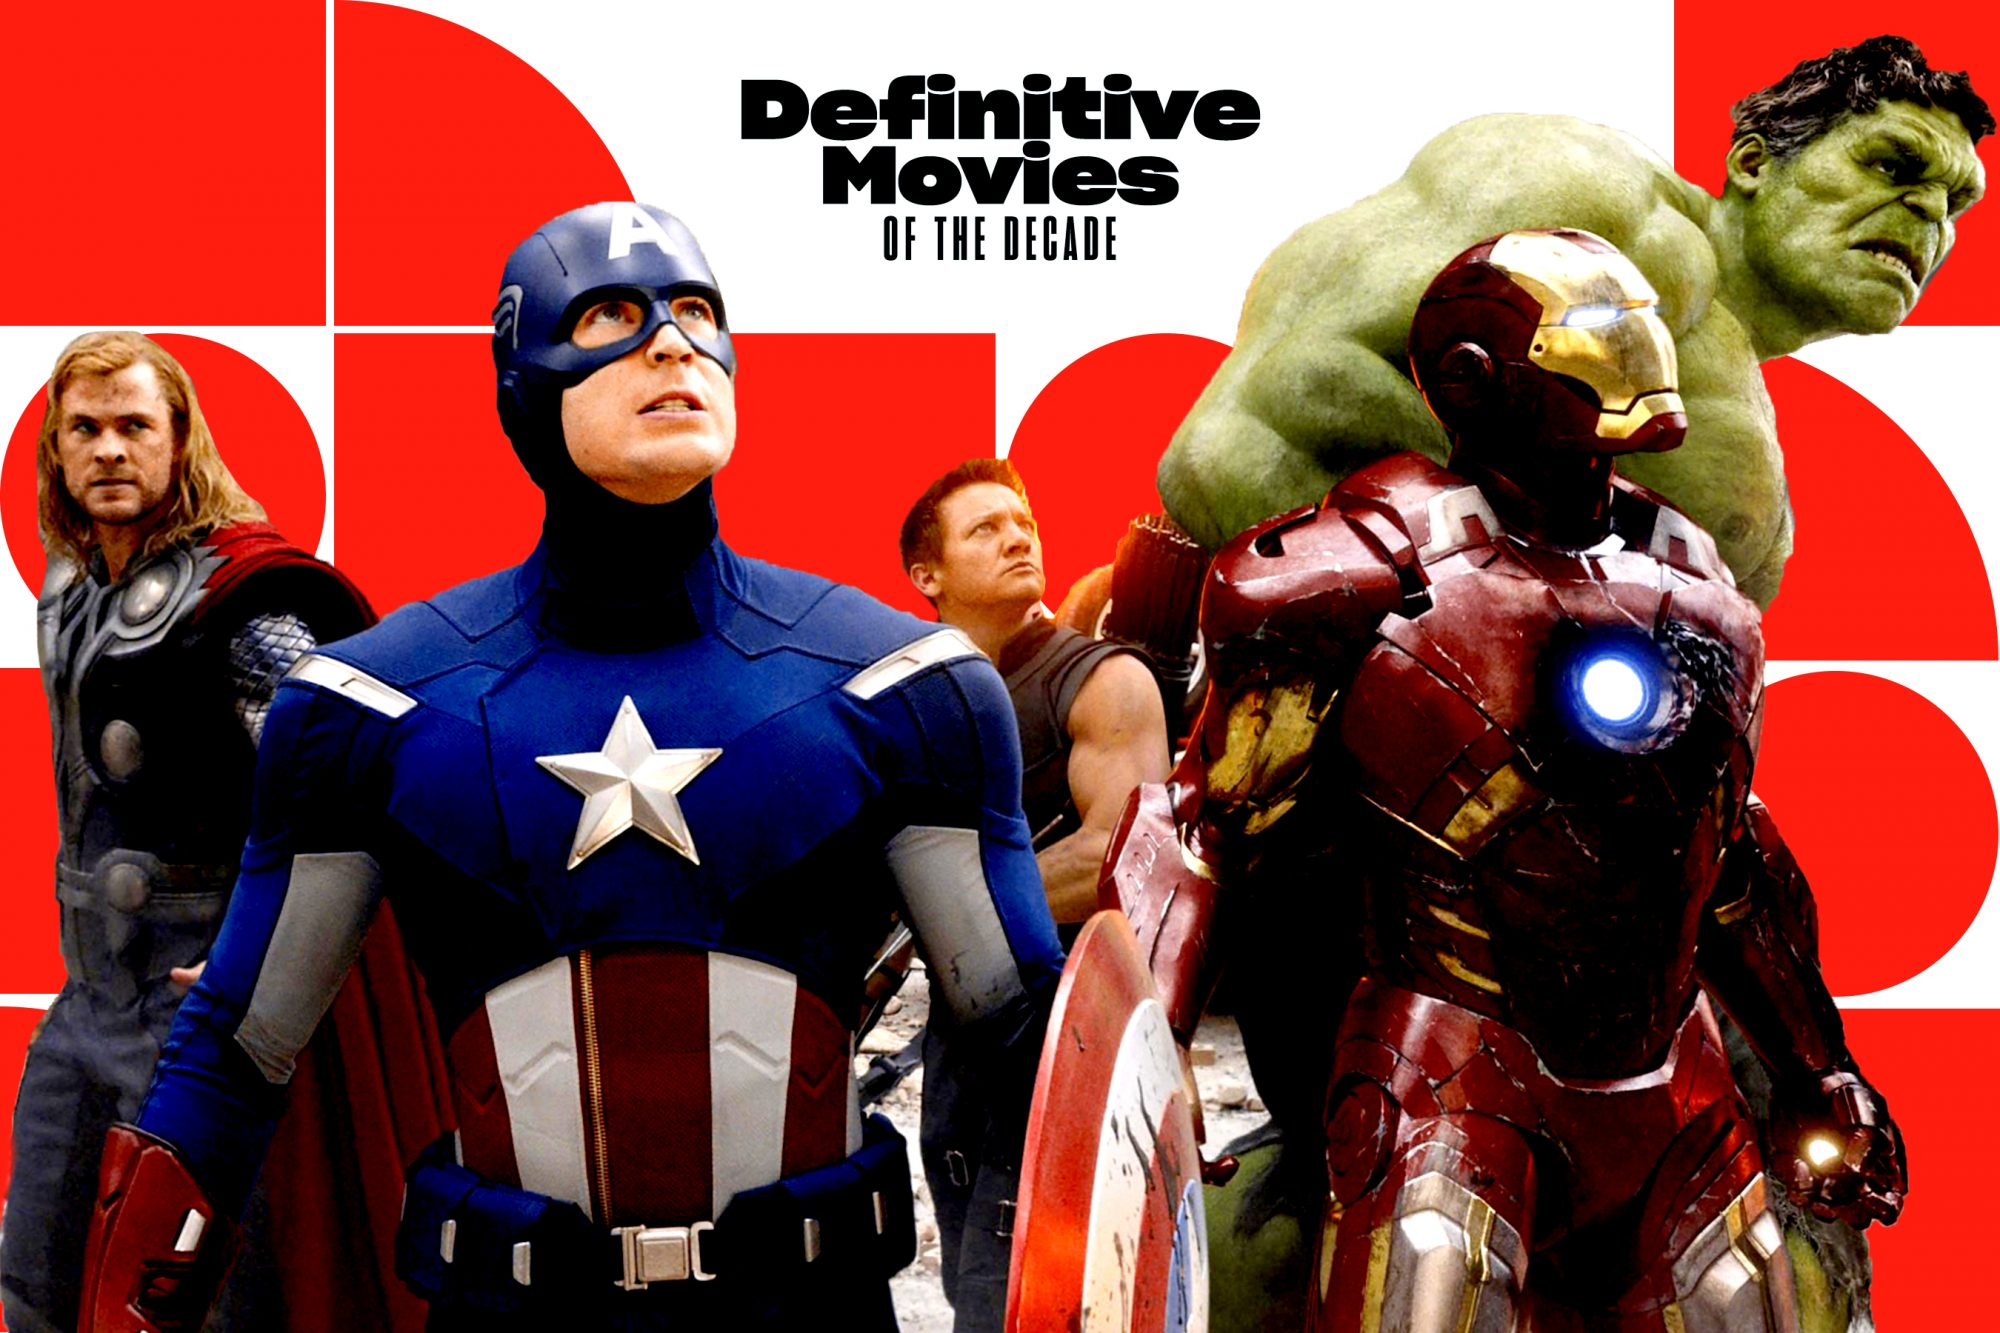 Definitive Movies of the Decade